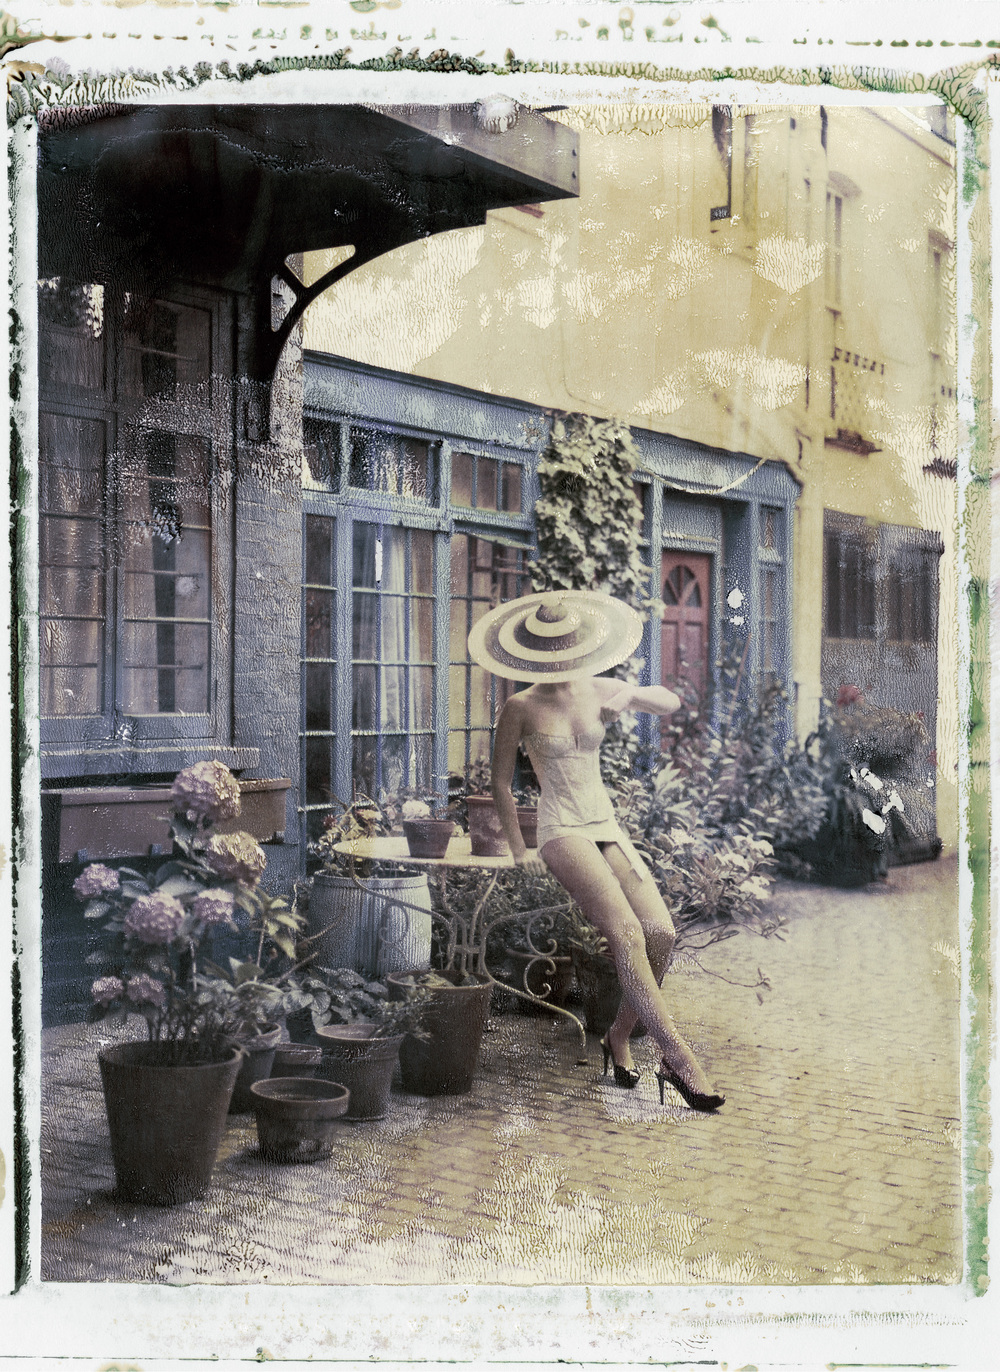 4PM IN LONDON, PHILIP TREACY (HAT), CADOLLE (LINGERIE) , 200.  Chromogenic print from original polaroid, 24 x 20 inches (60 x 50 cm).   ©   Cathleen Naundorf / Courtesy Edwynn Houk Gallery, New York & Zürich